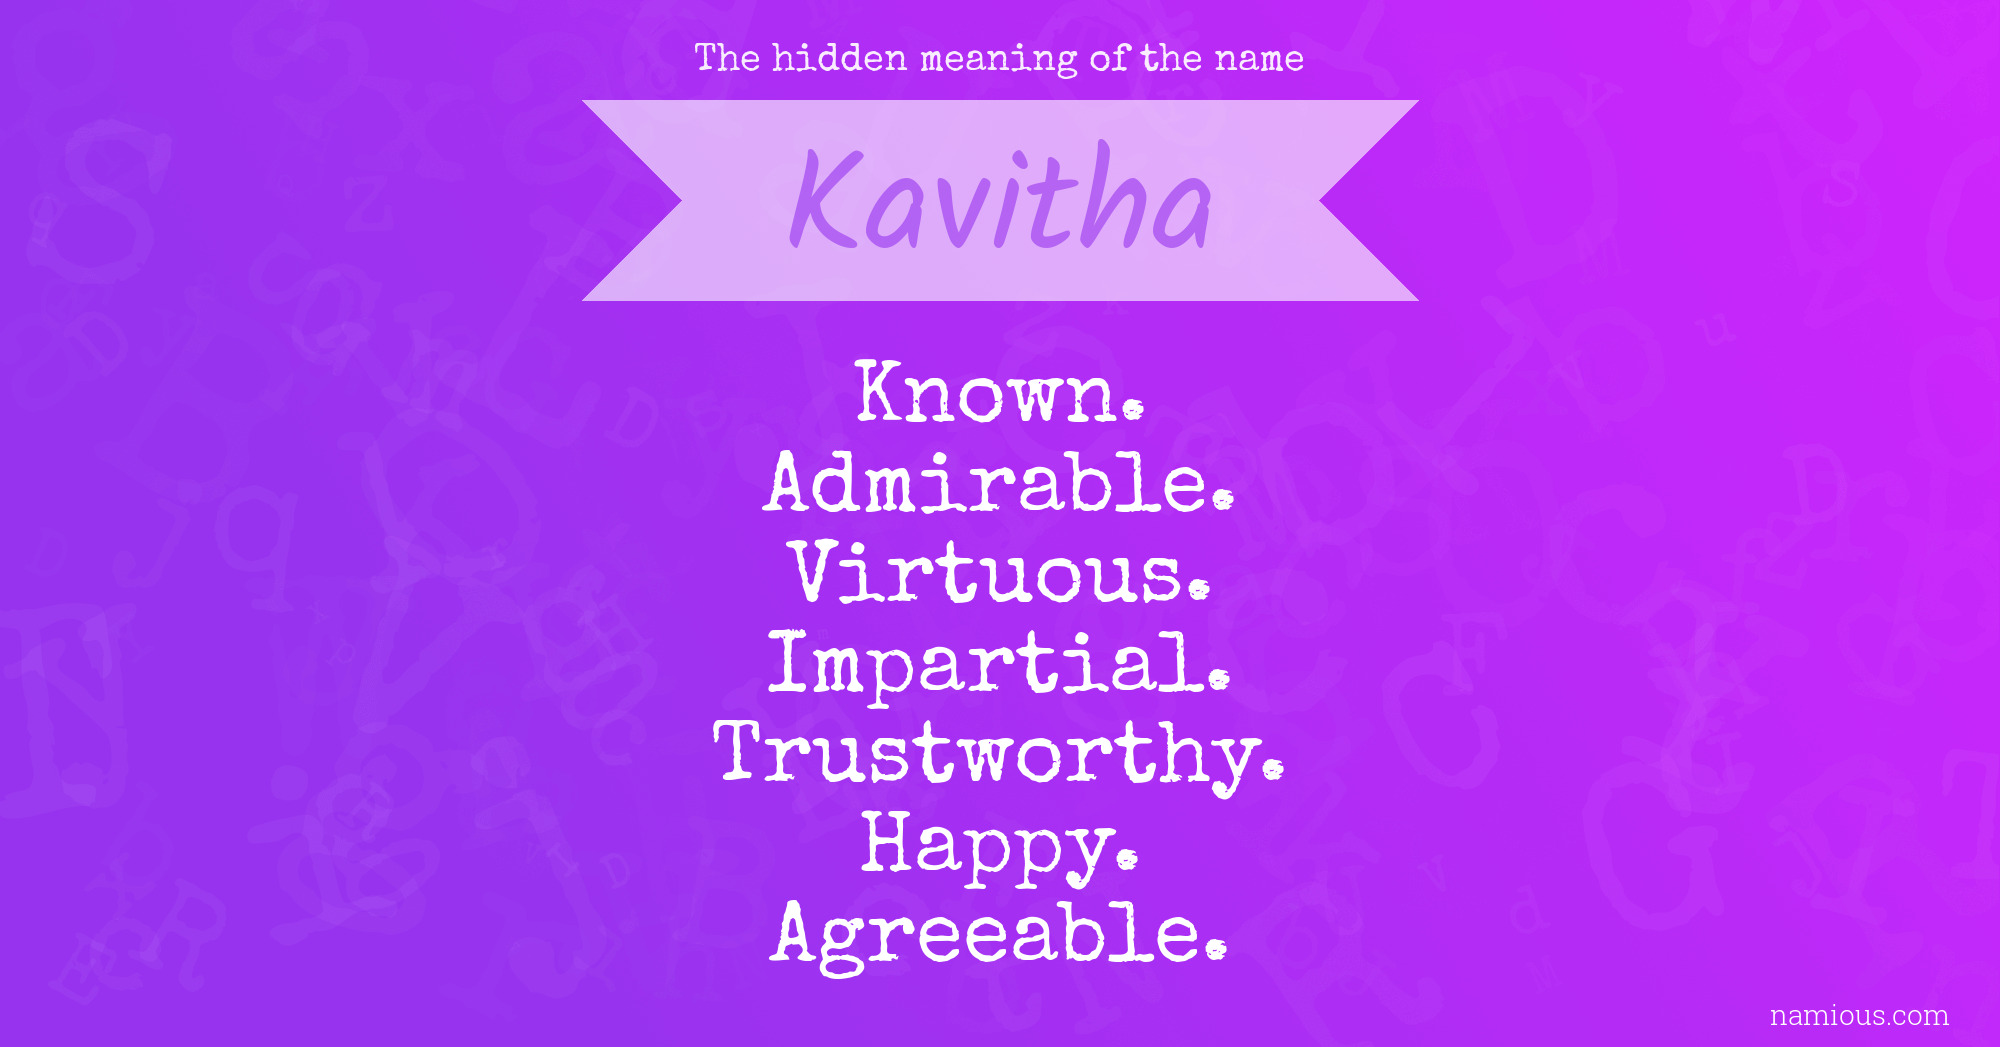 The hidden meaning of the name Kavitha | Namious